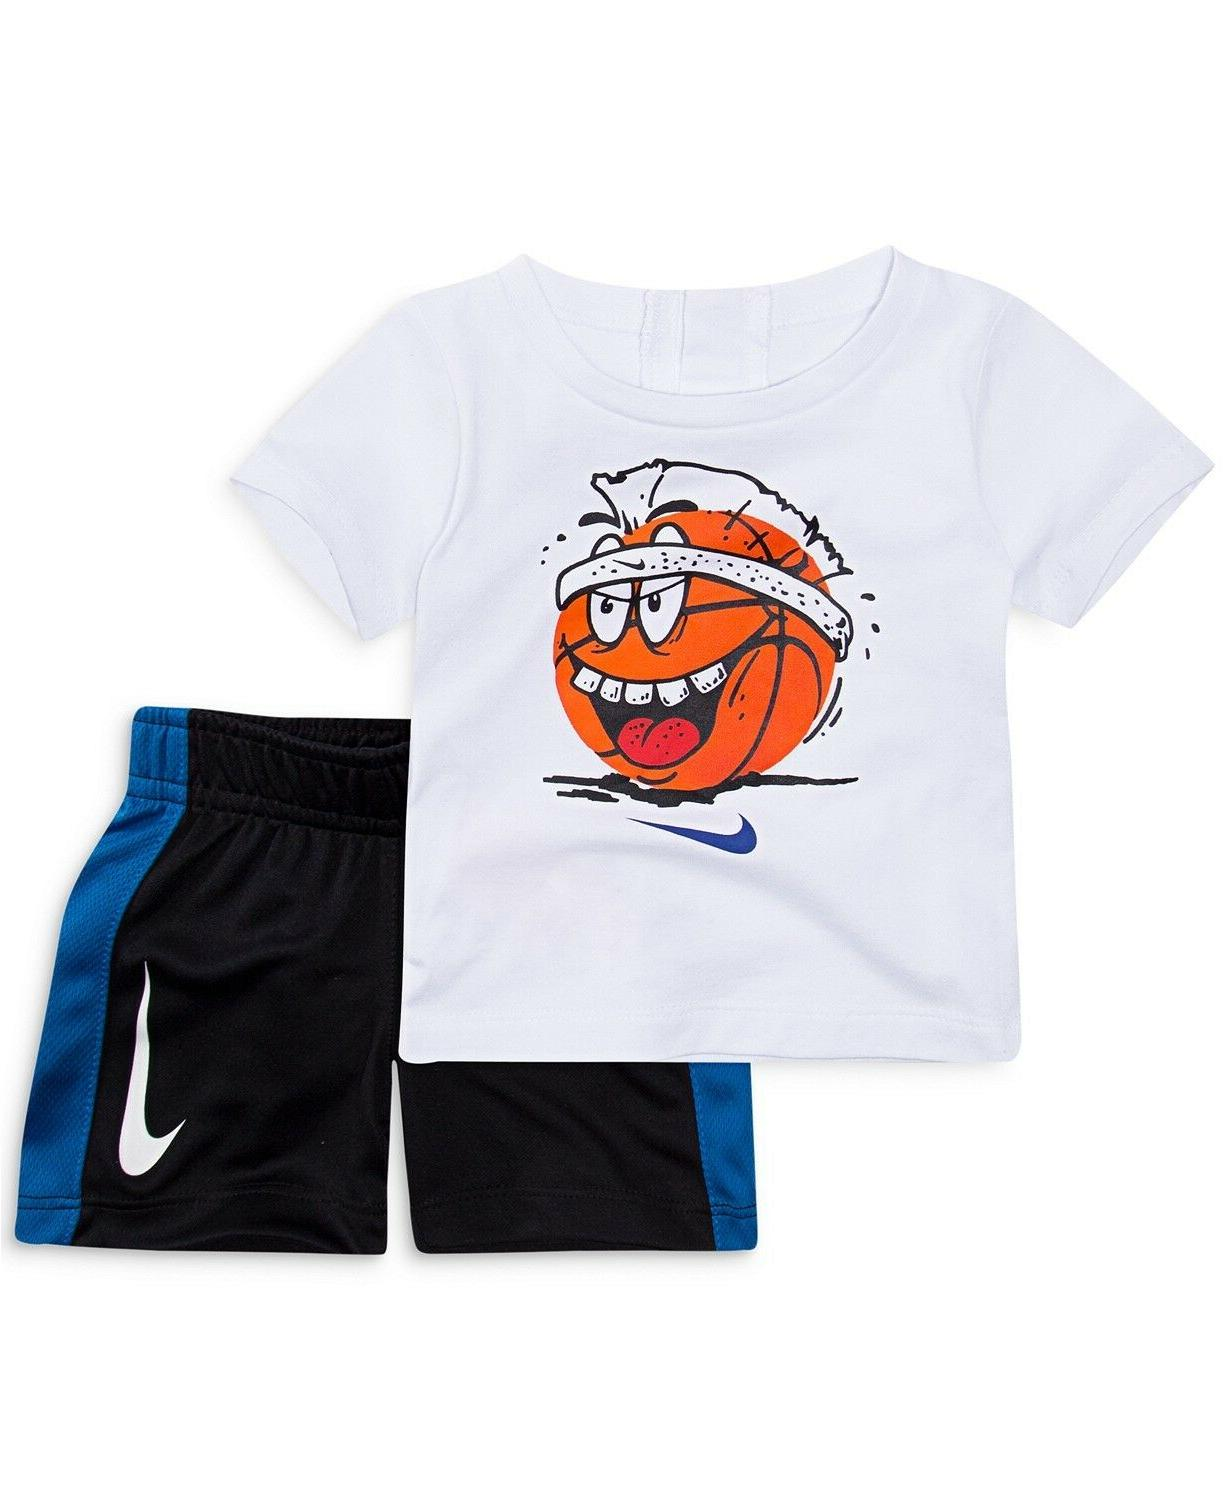 New Graphic & Shorts Set and Color